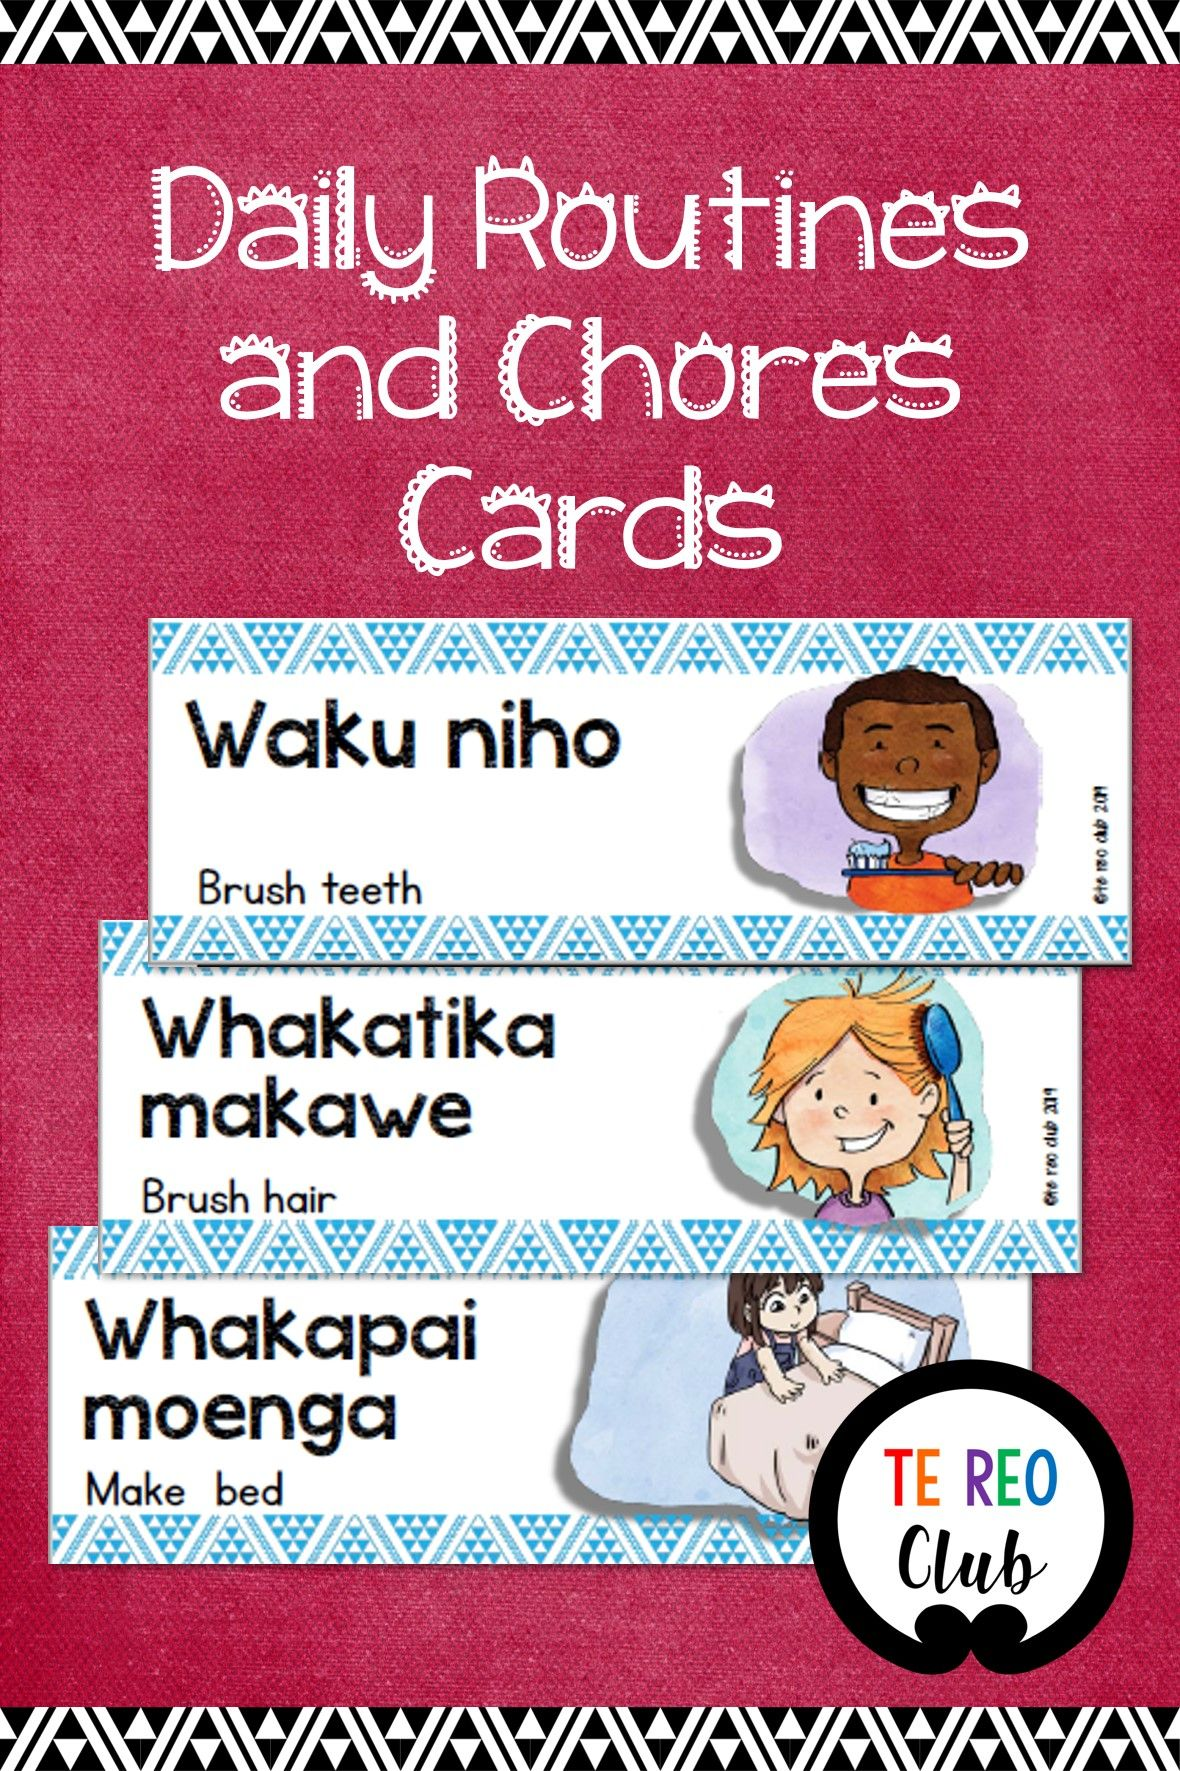 Daily routines and chores cards chore cards chores